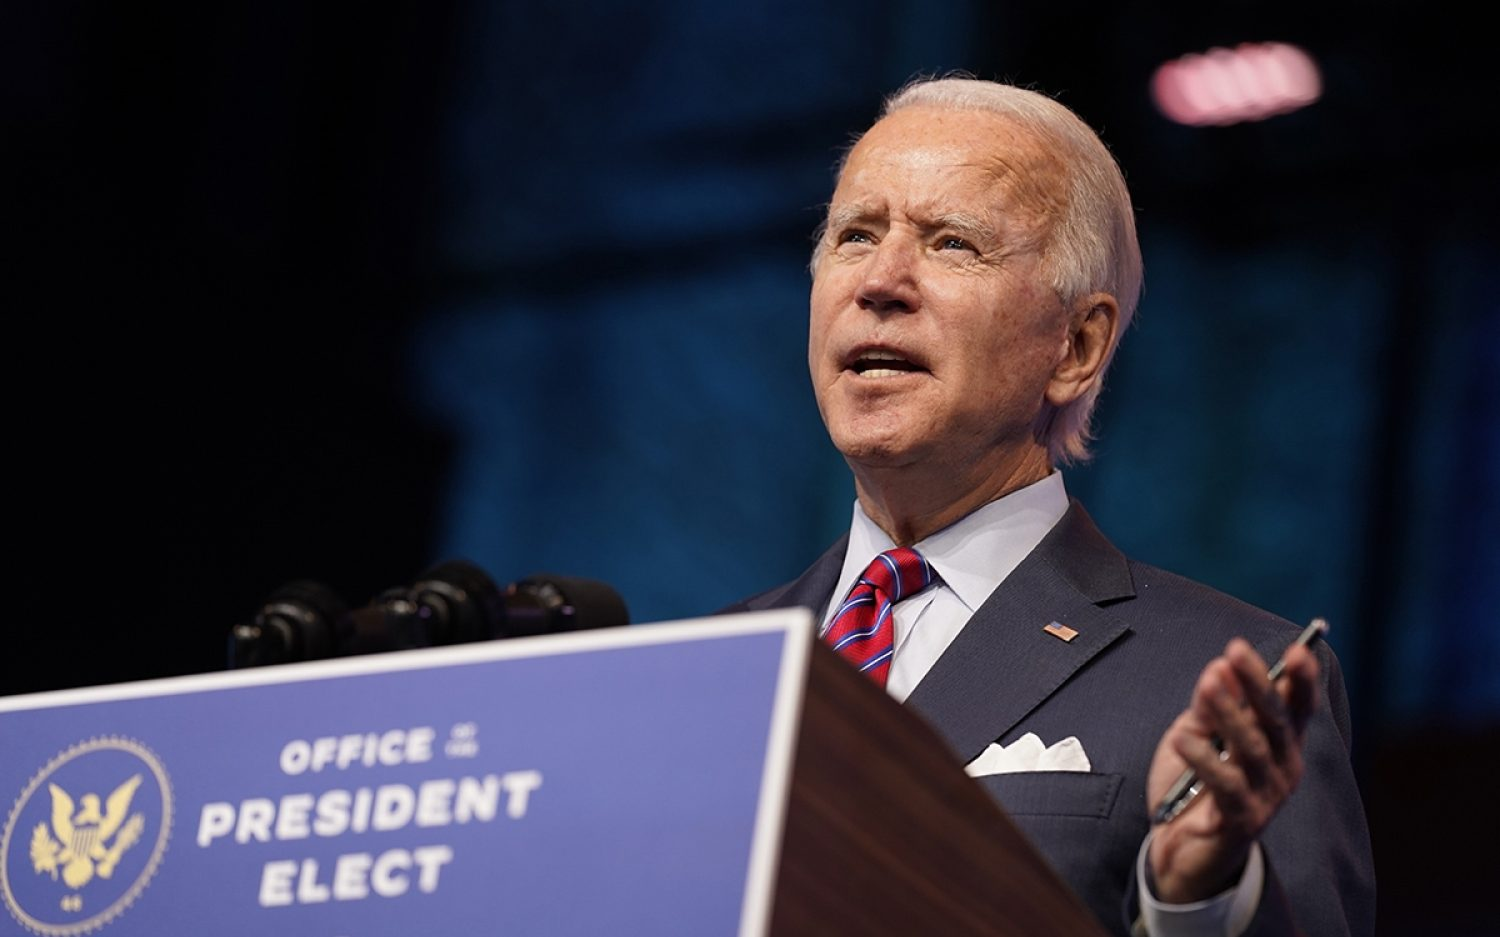 Biden clears another election hurdle